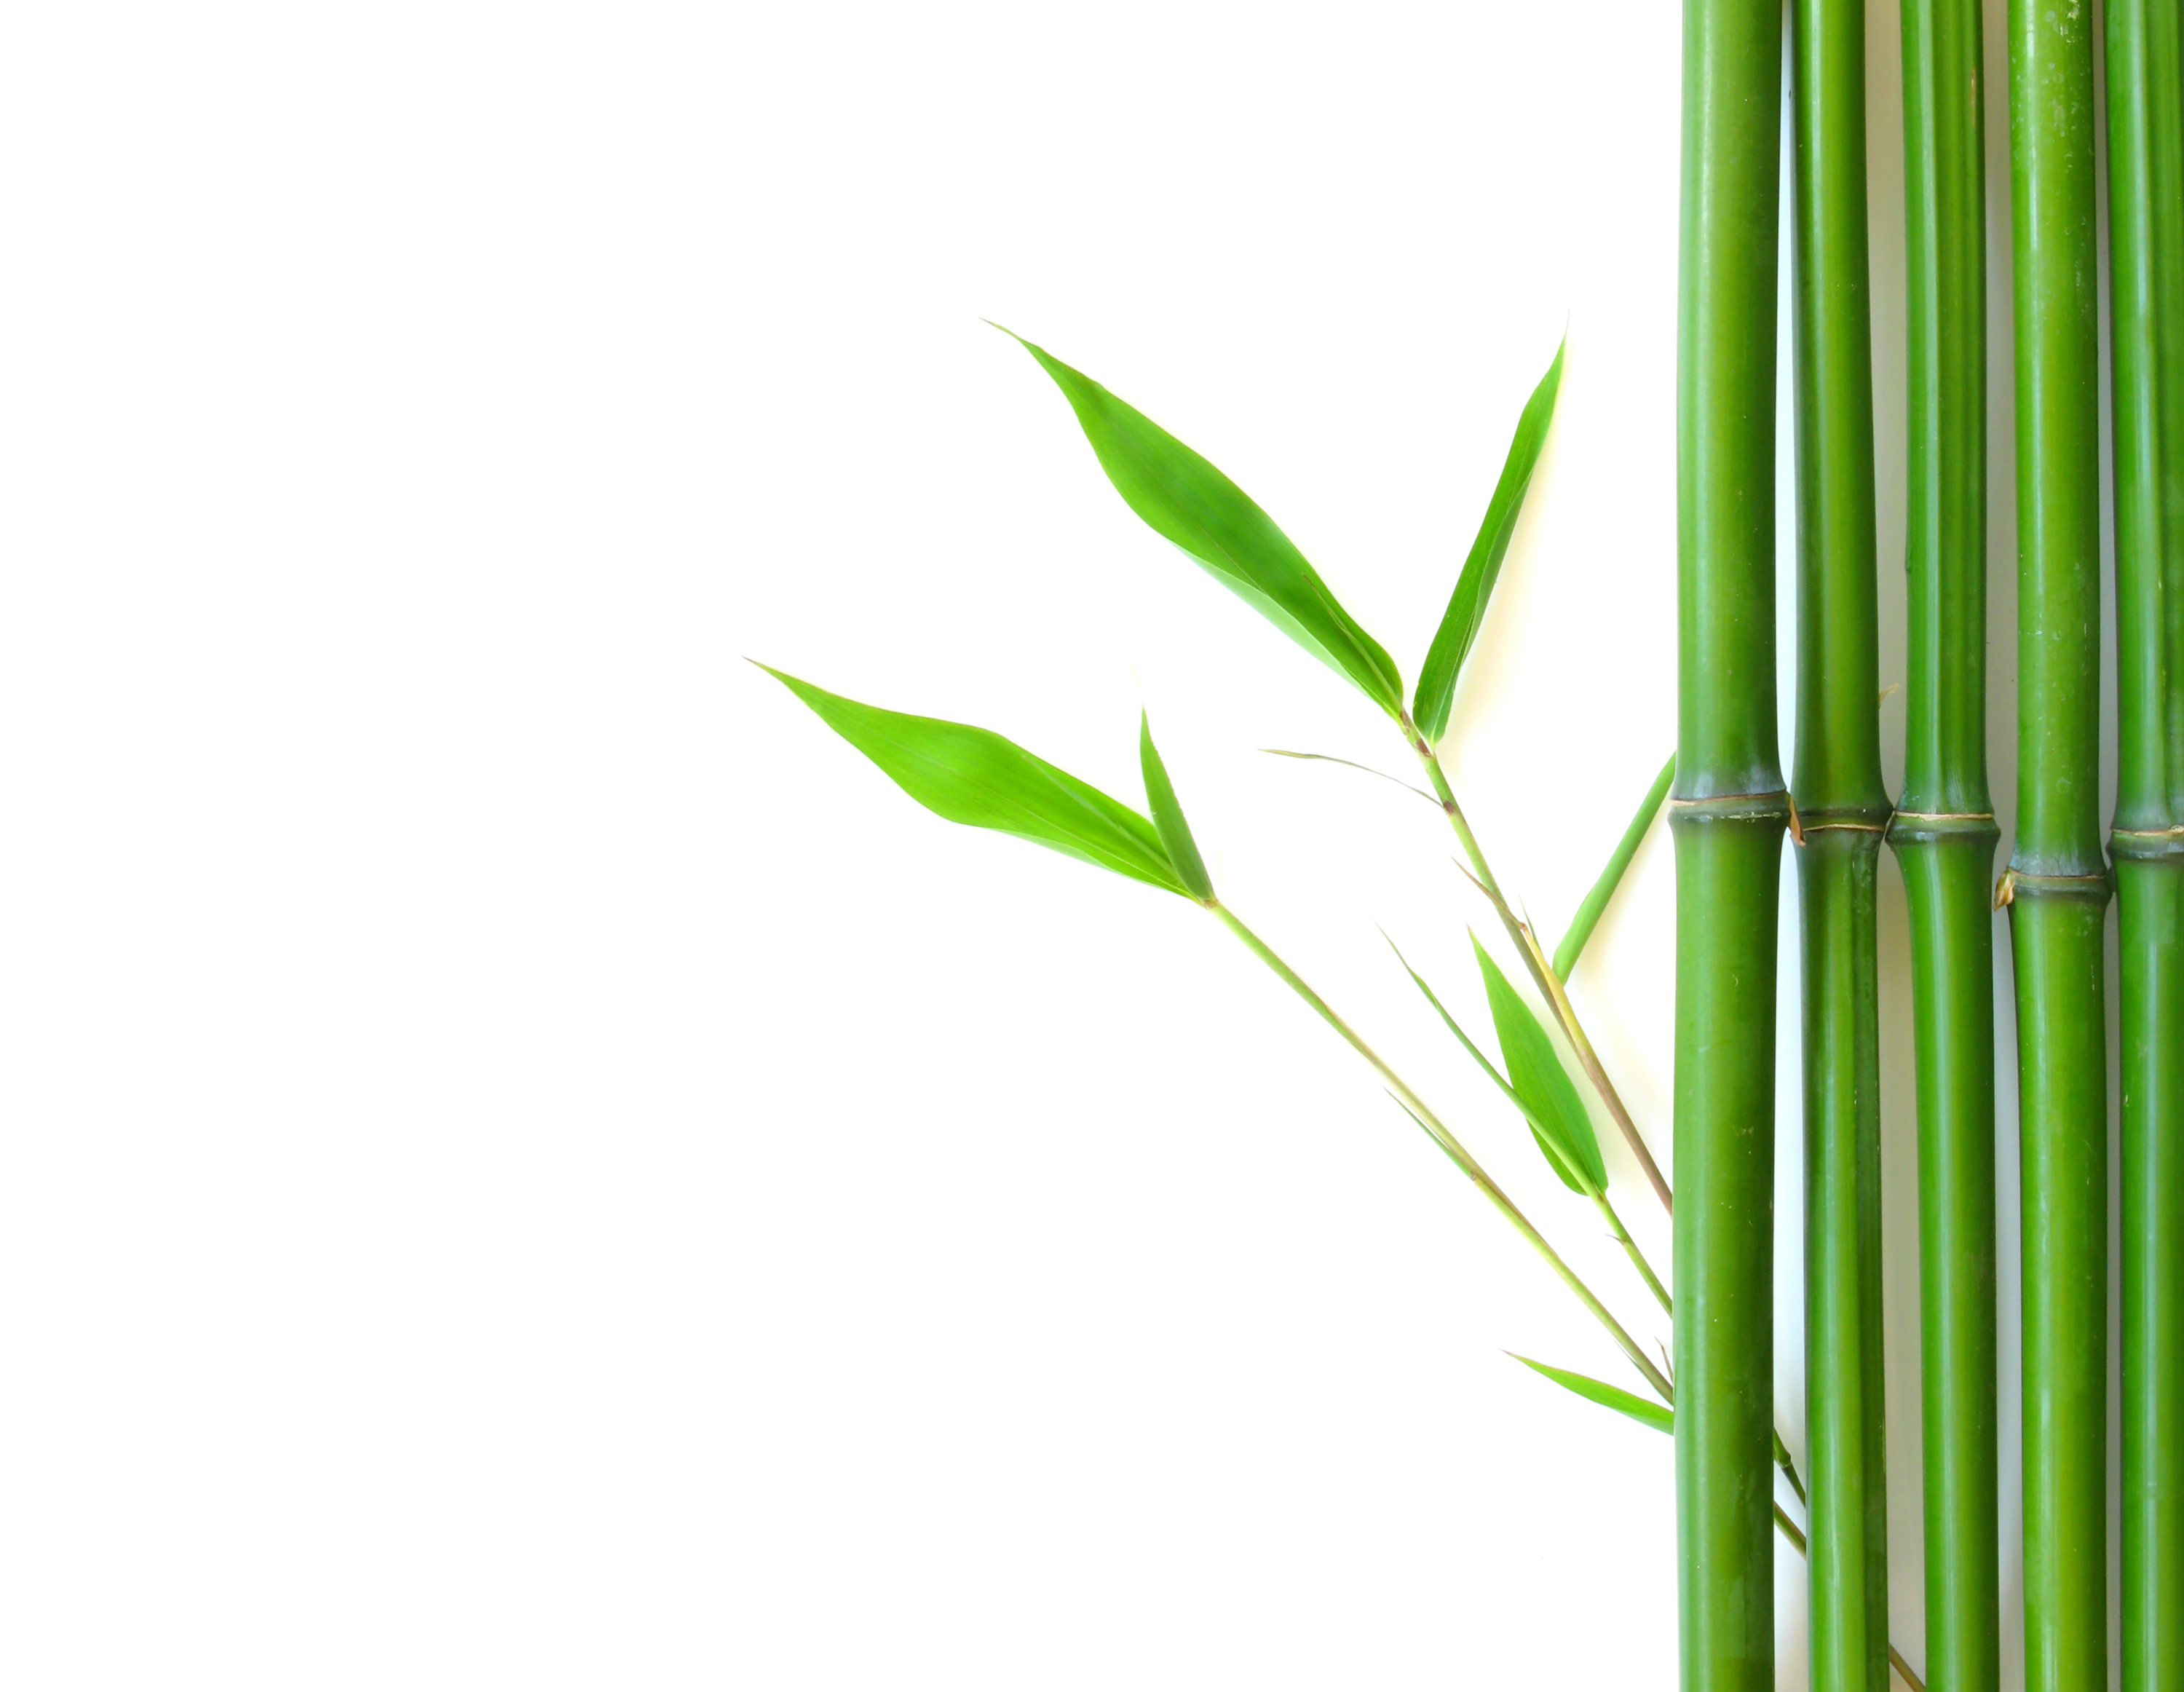 Tree png background jpg. Bamboo clipart bamboo grass